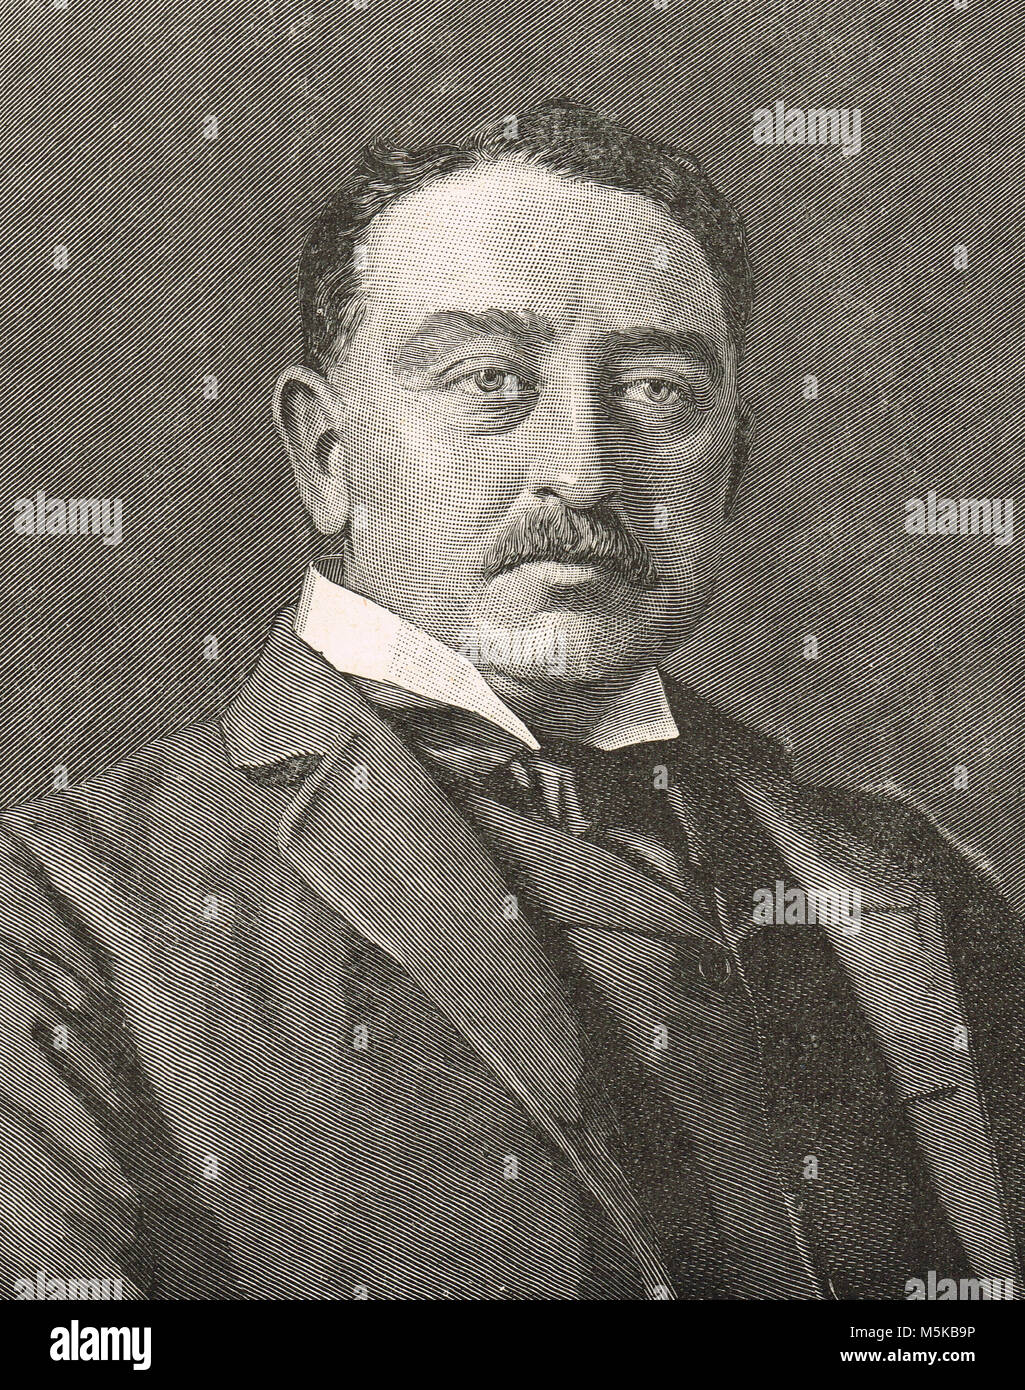 Cecil Rhodes, British imperialist, founder of the Southern African territory of Rhodesia, (present day Zimbabwe Stock Photo